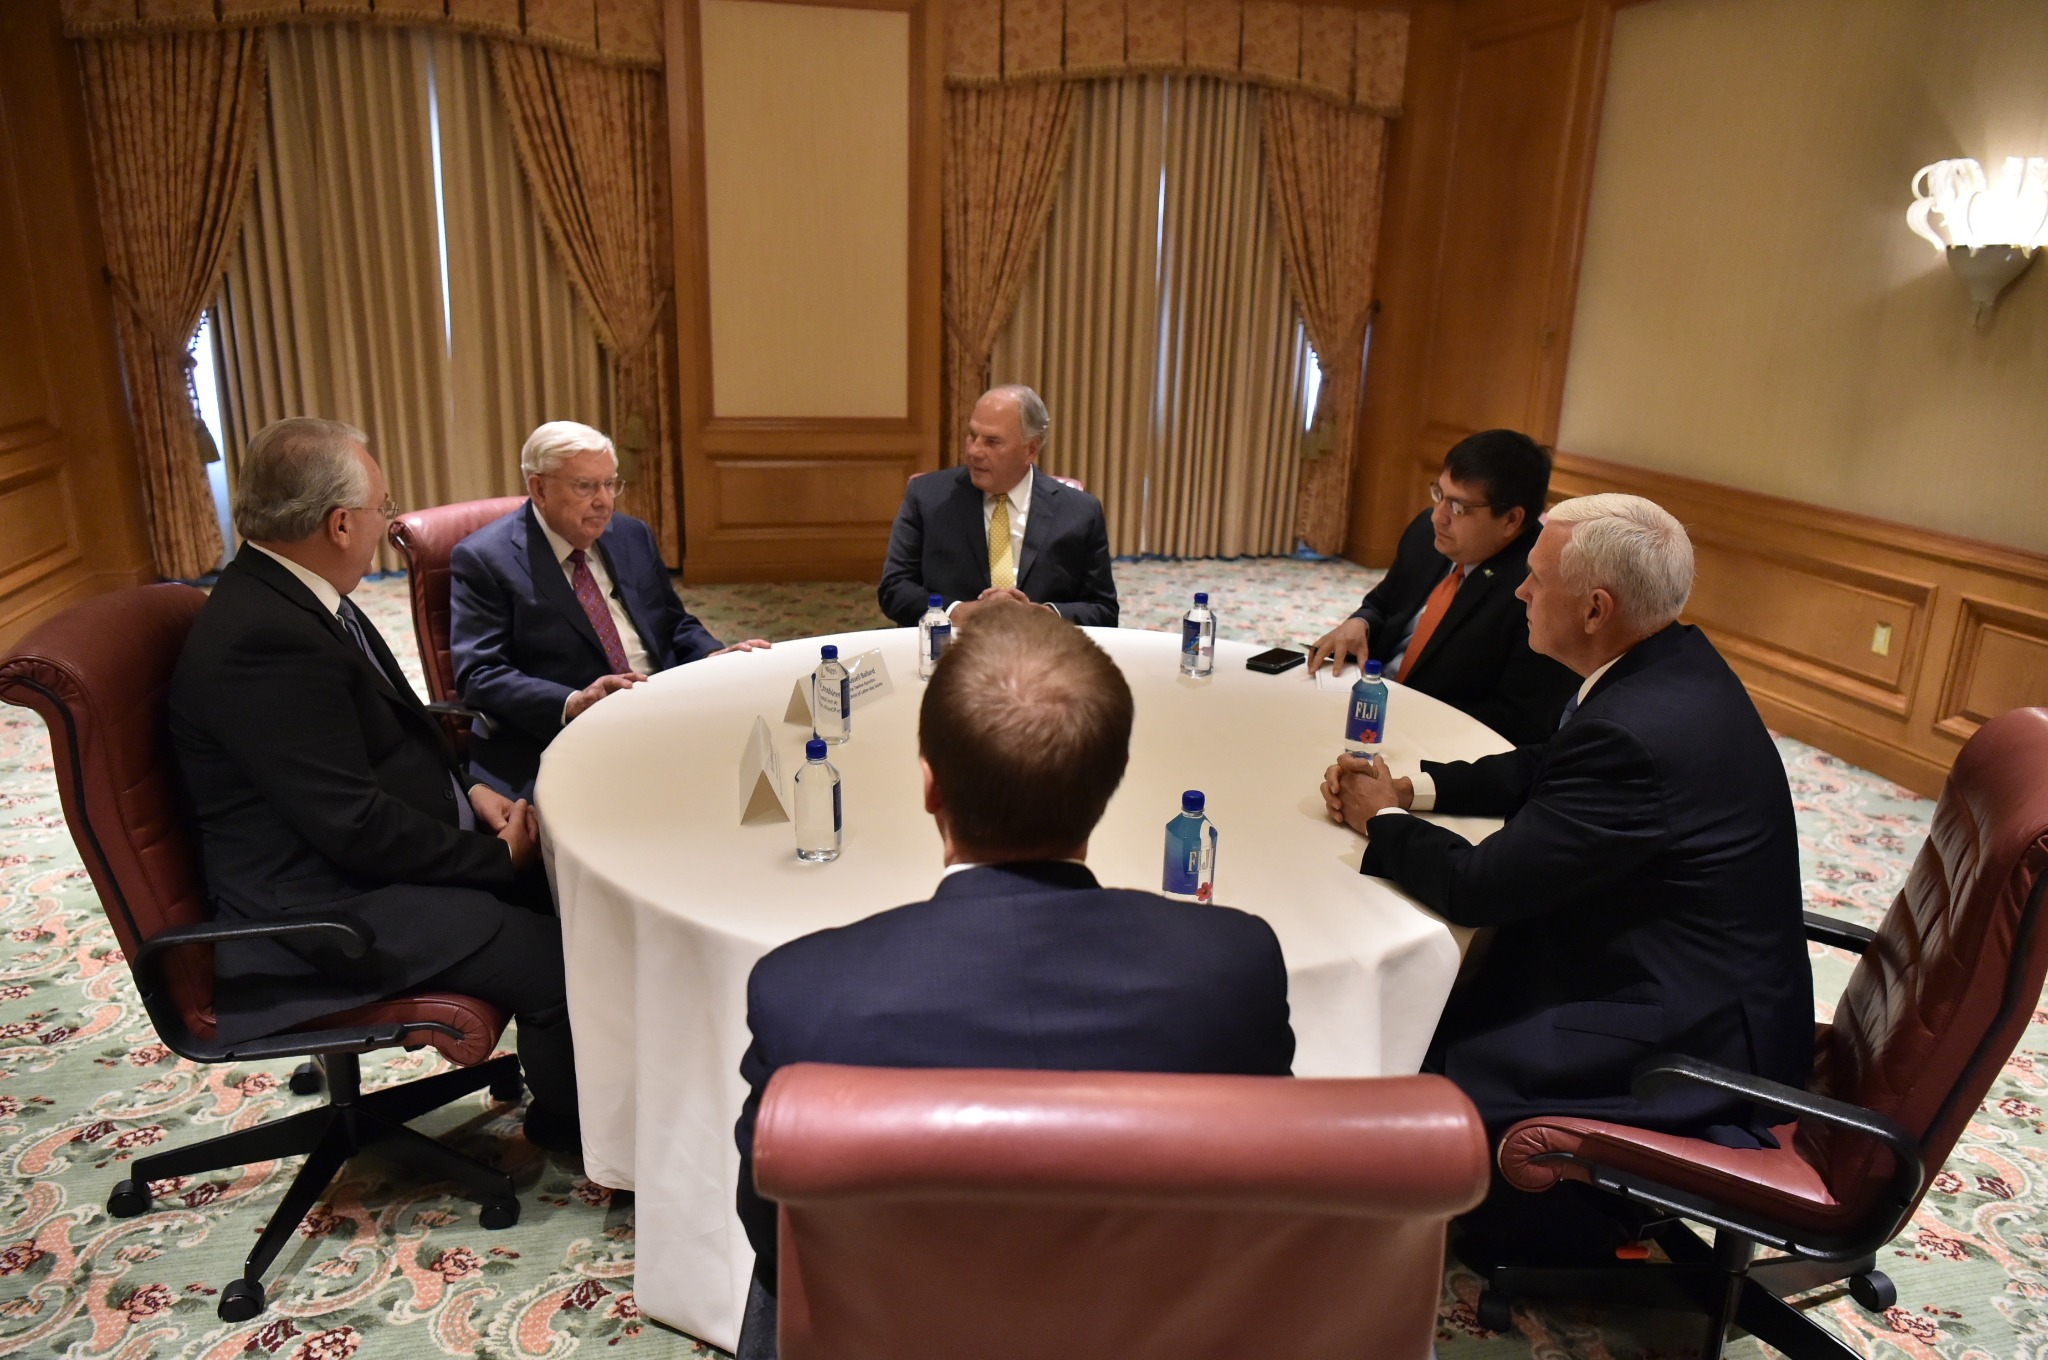 U.S. Vice President Michael R. Pence, right, meets with Elder Jack N. Gerard of the Seventy, left, President M. Russell Ballard, acting president of the Quorum of the Twelve Apostles, second from left, and Elder Ronald A. Rasband of the Quorum of the Twelve Apostles, center back, on Aug. 22, 2019.